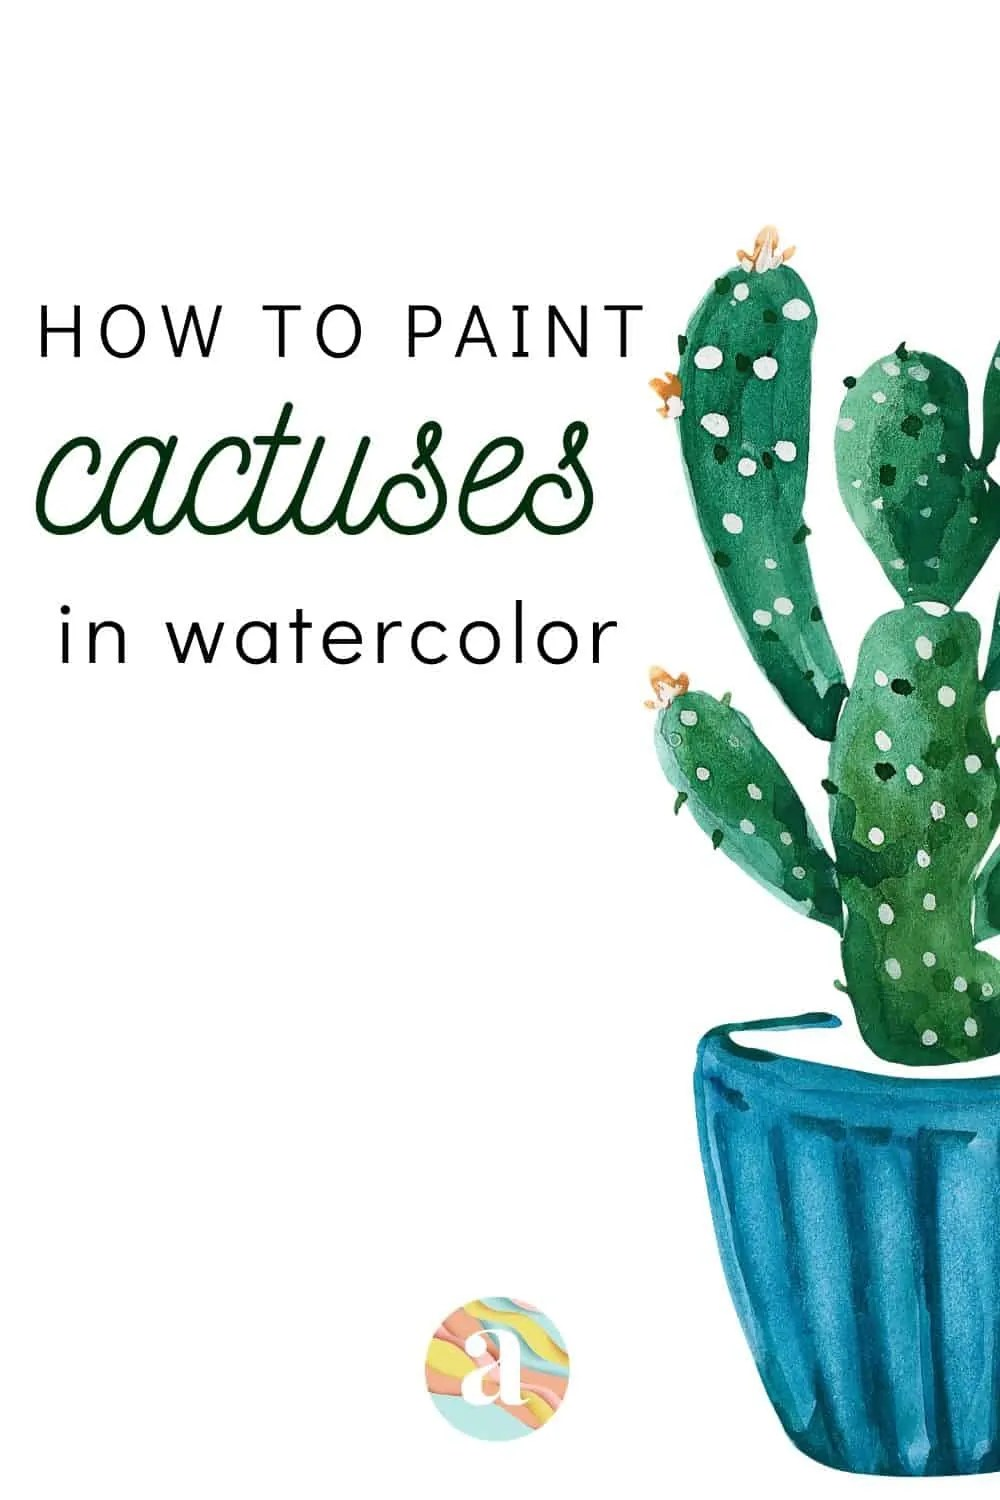 10 Ideas for Your Next Watercolor Painting 33